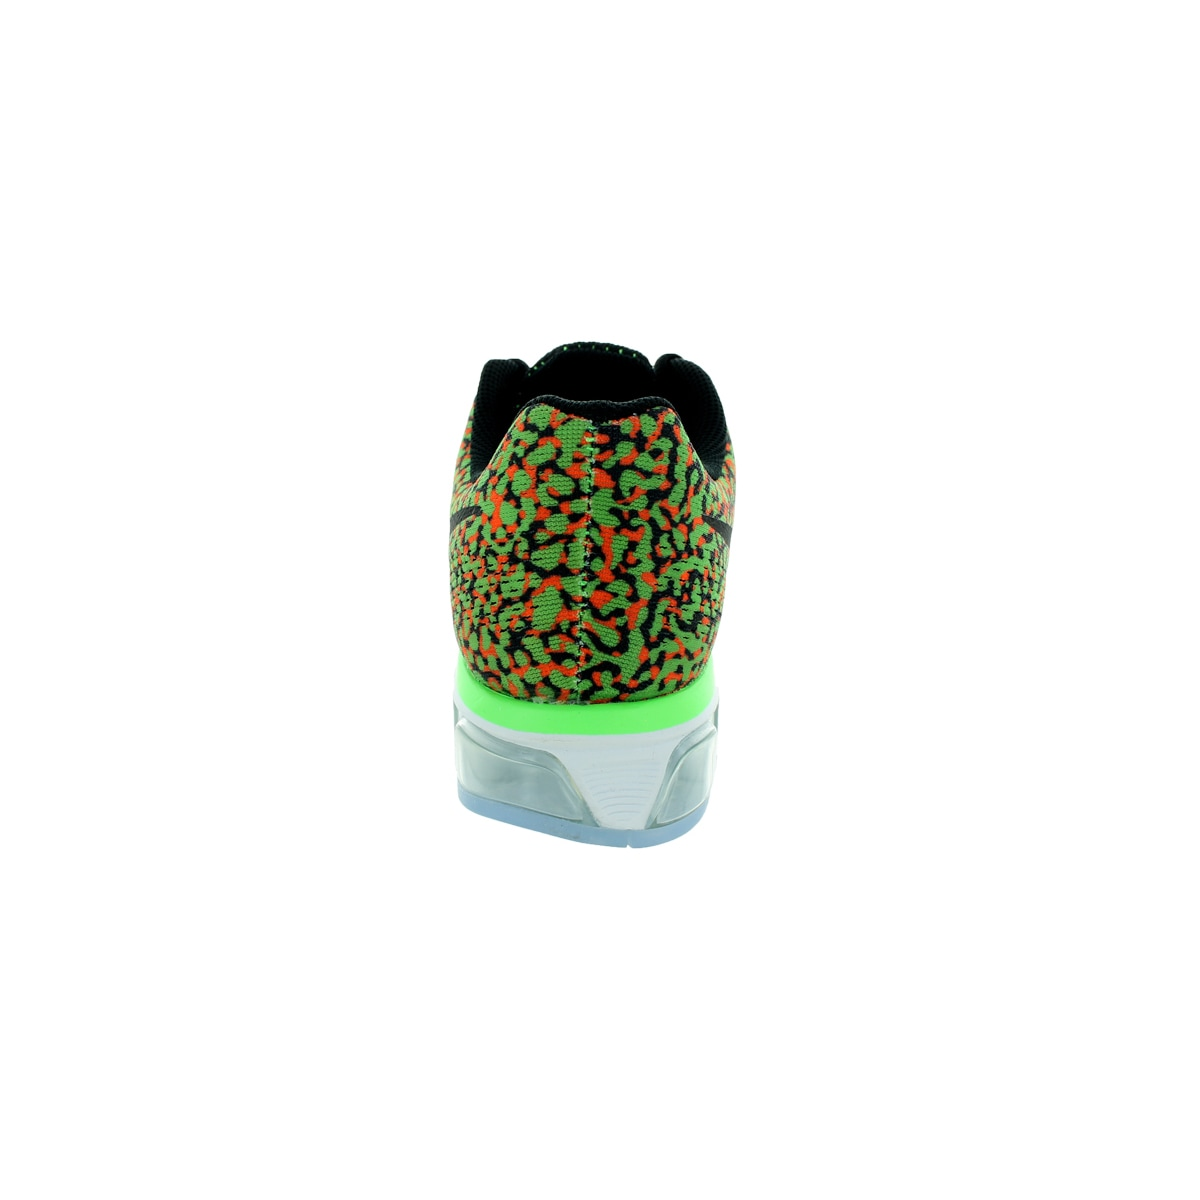 competitive price beeb9 52b61 Shop Nike Women s Air Max Tailwind 8 Green Black  Orange White Running Shoe  - Free Shipping Today - Overstock - 12321446